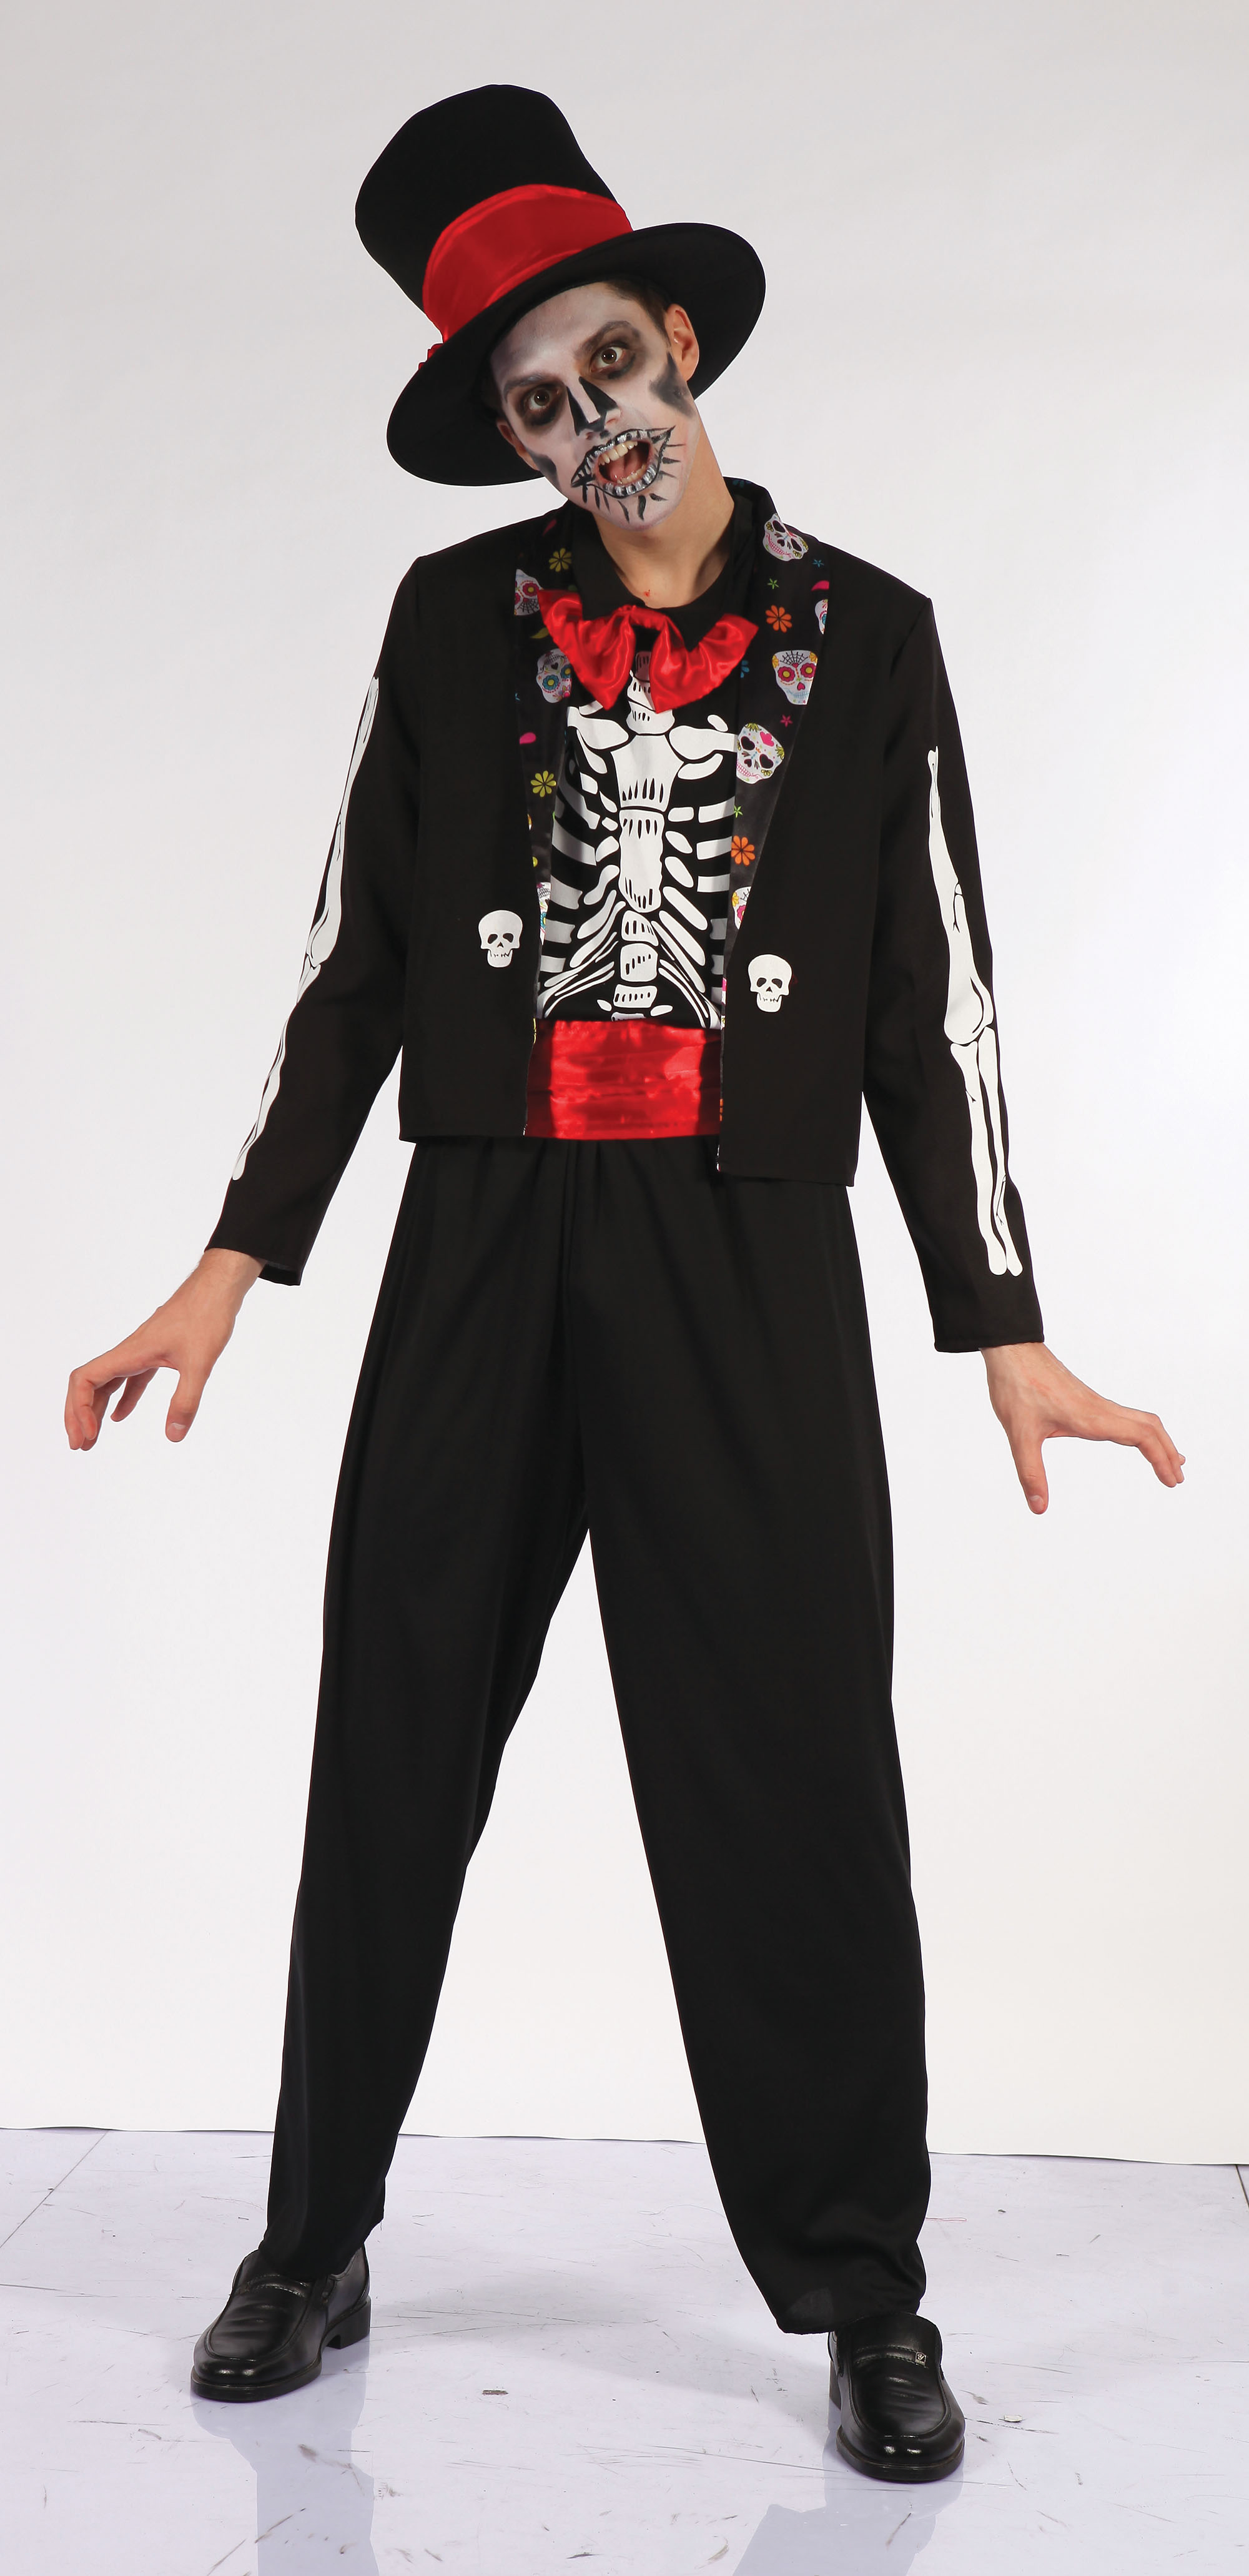 Adult size Day of the Dead Bone Suit